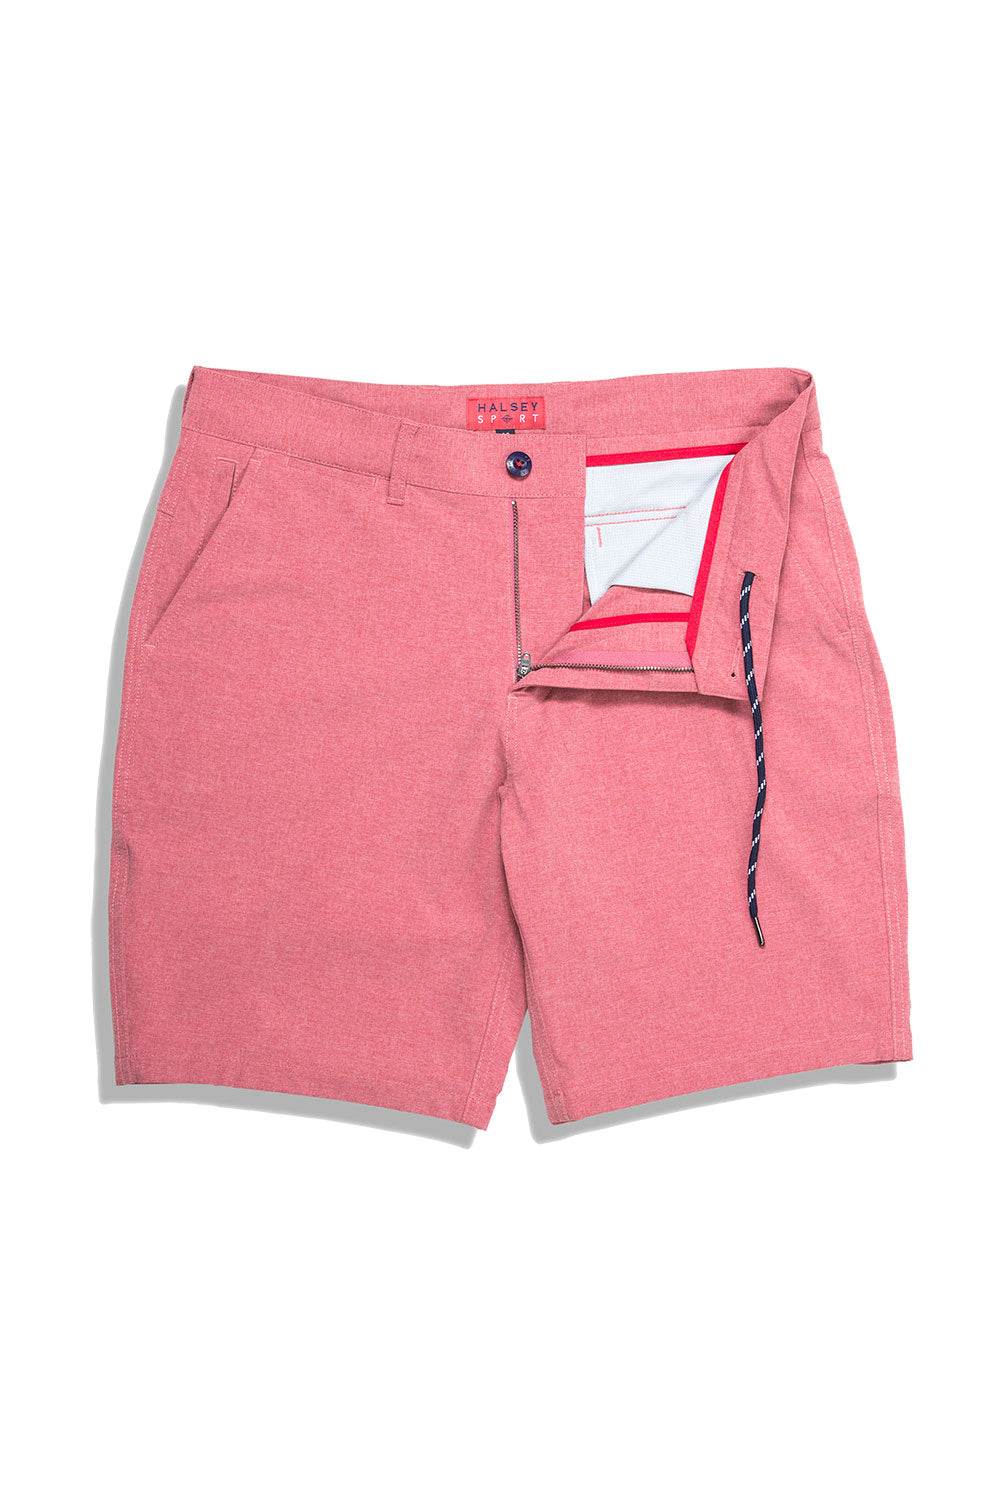 Halsey Sport Waypoint Water Resistant Stretch Hybrid Shorts